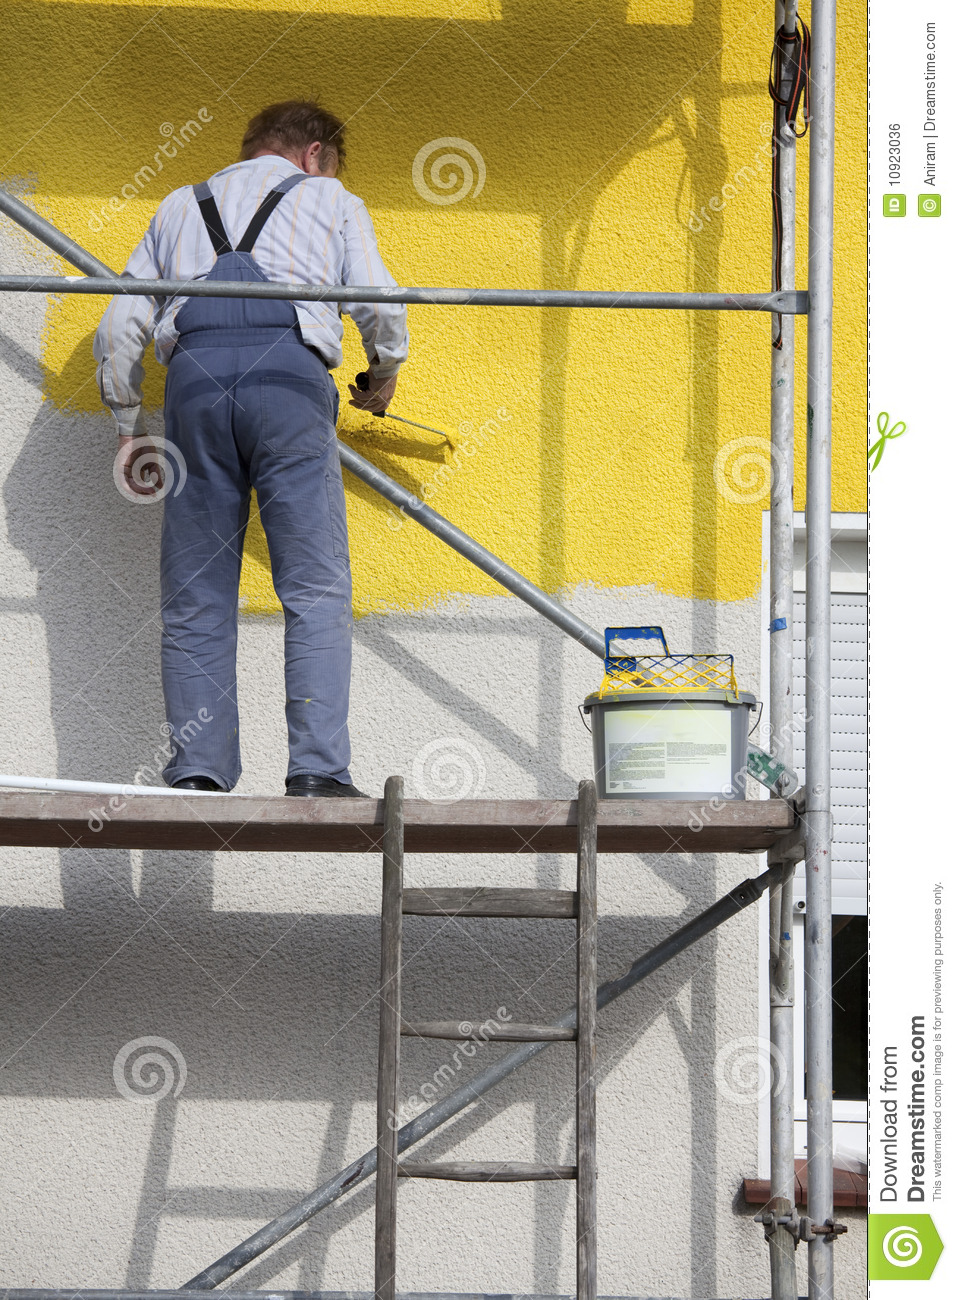 Painter On A Scaffold Royalty Free Stock Image - Image: 10923036